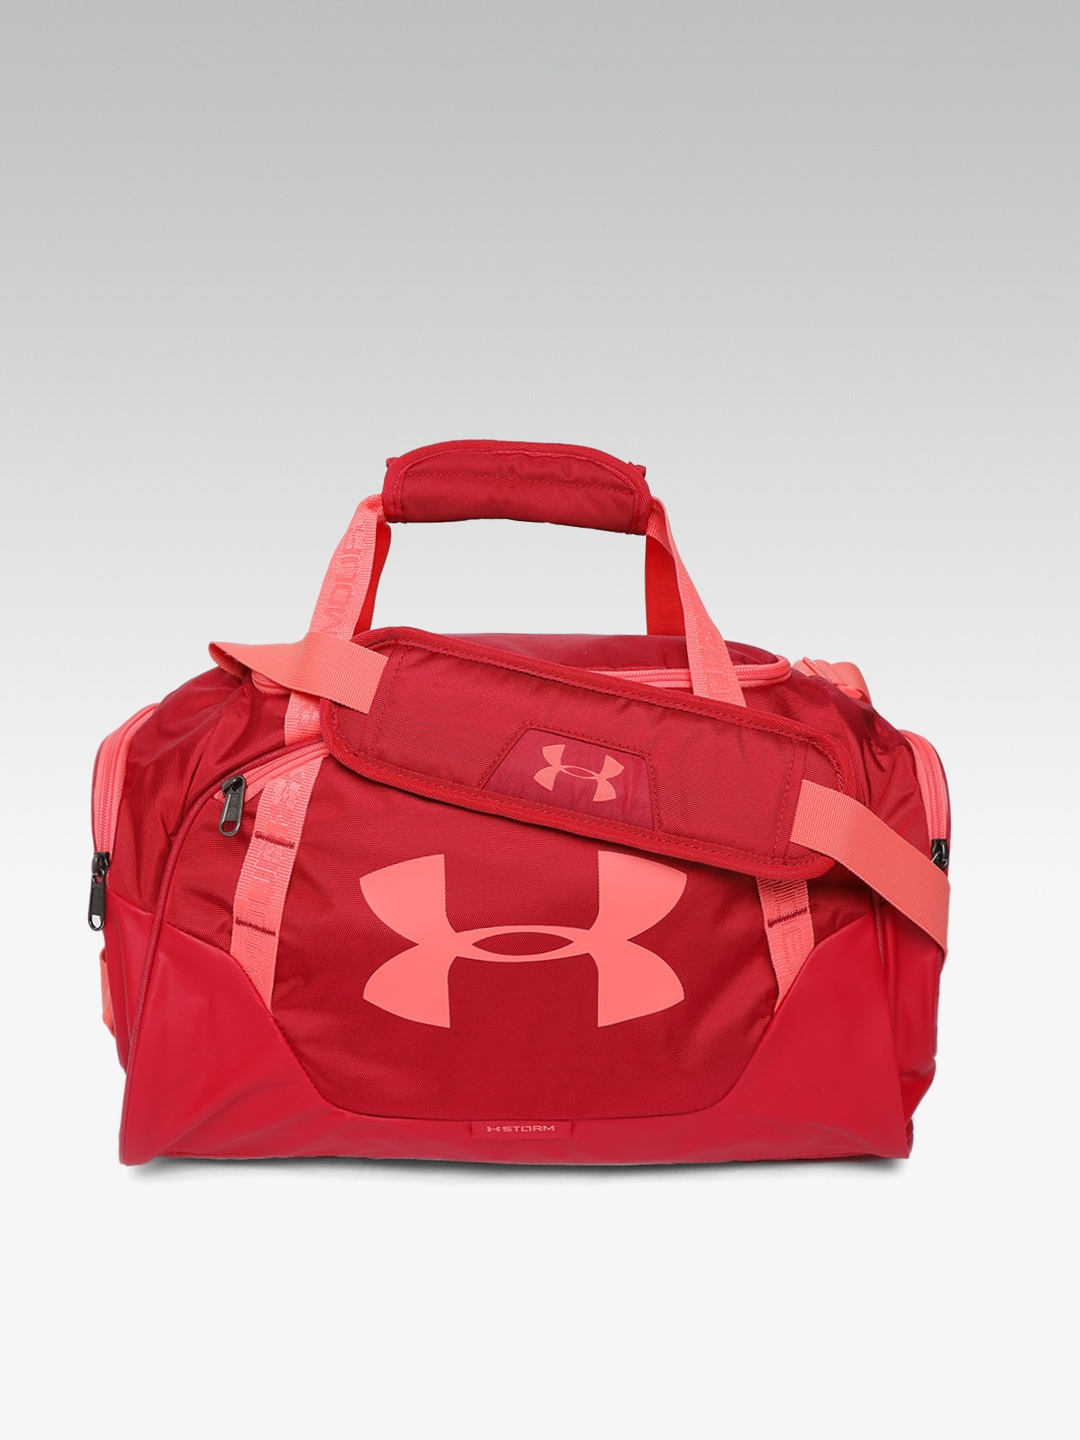 65a5e8ae2b Branded Bags Travel Accessory - Buy Branded Bags Travel Accessory online in  India